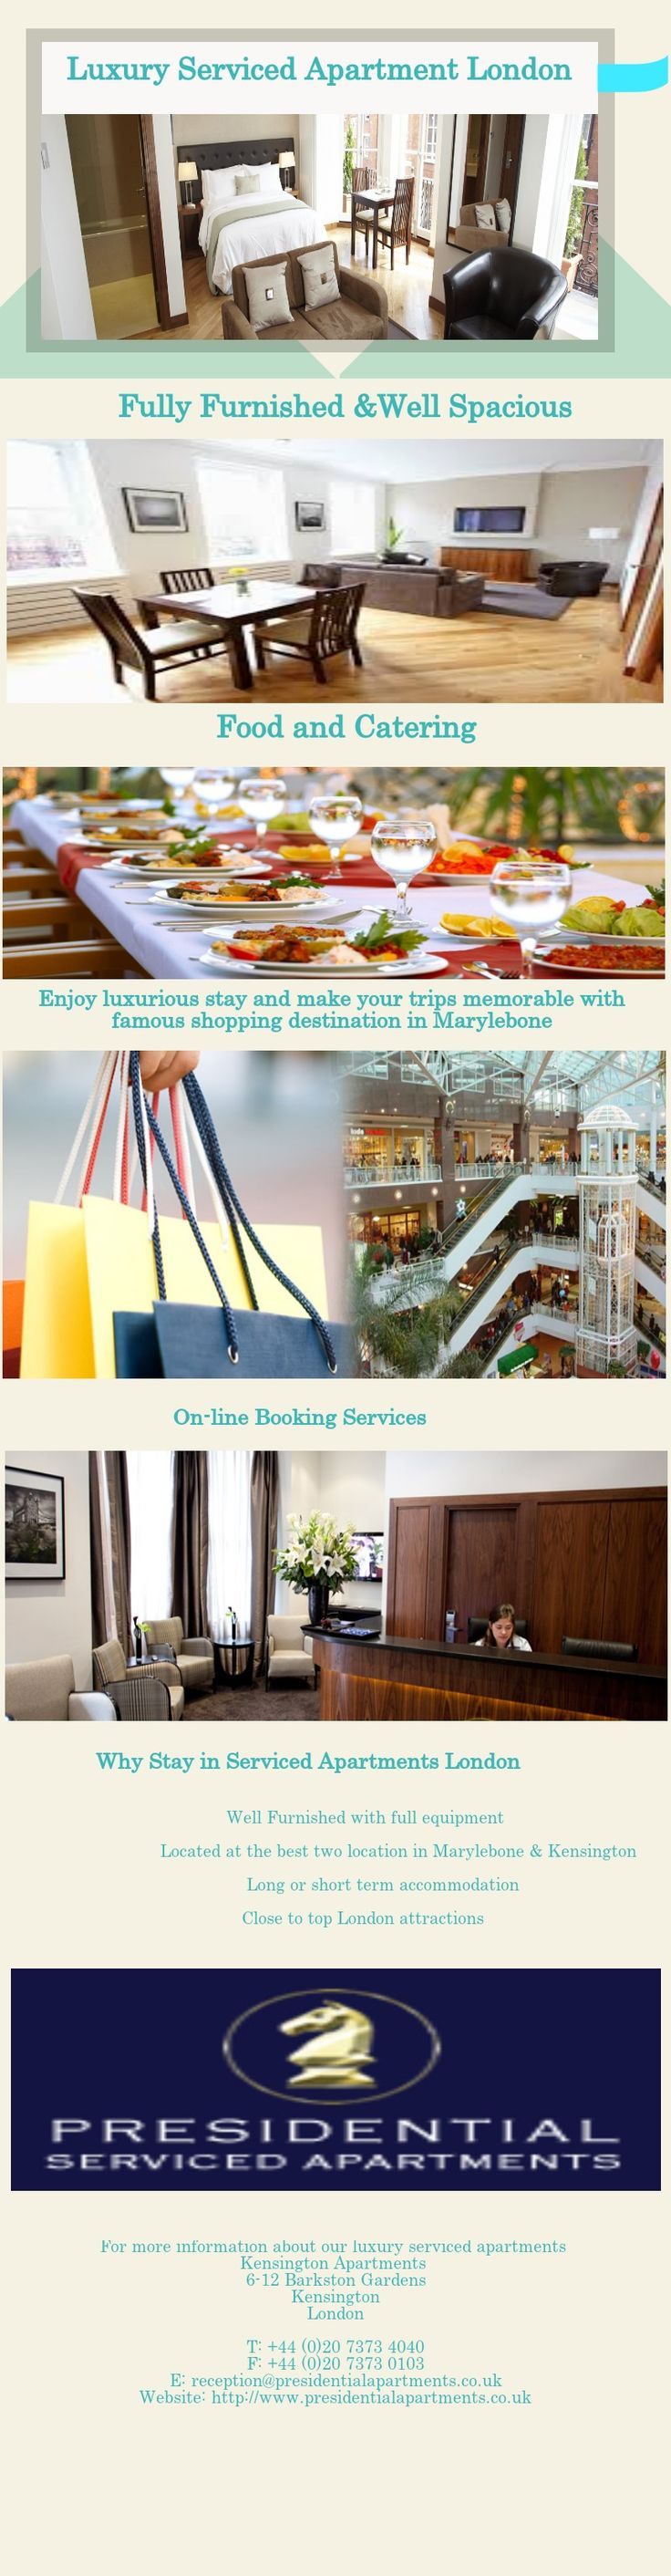 Enjoy luxurious stay and make your trips memorable in Presidential serviced apartments London  .